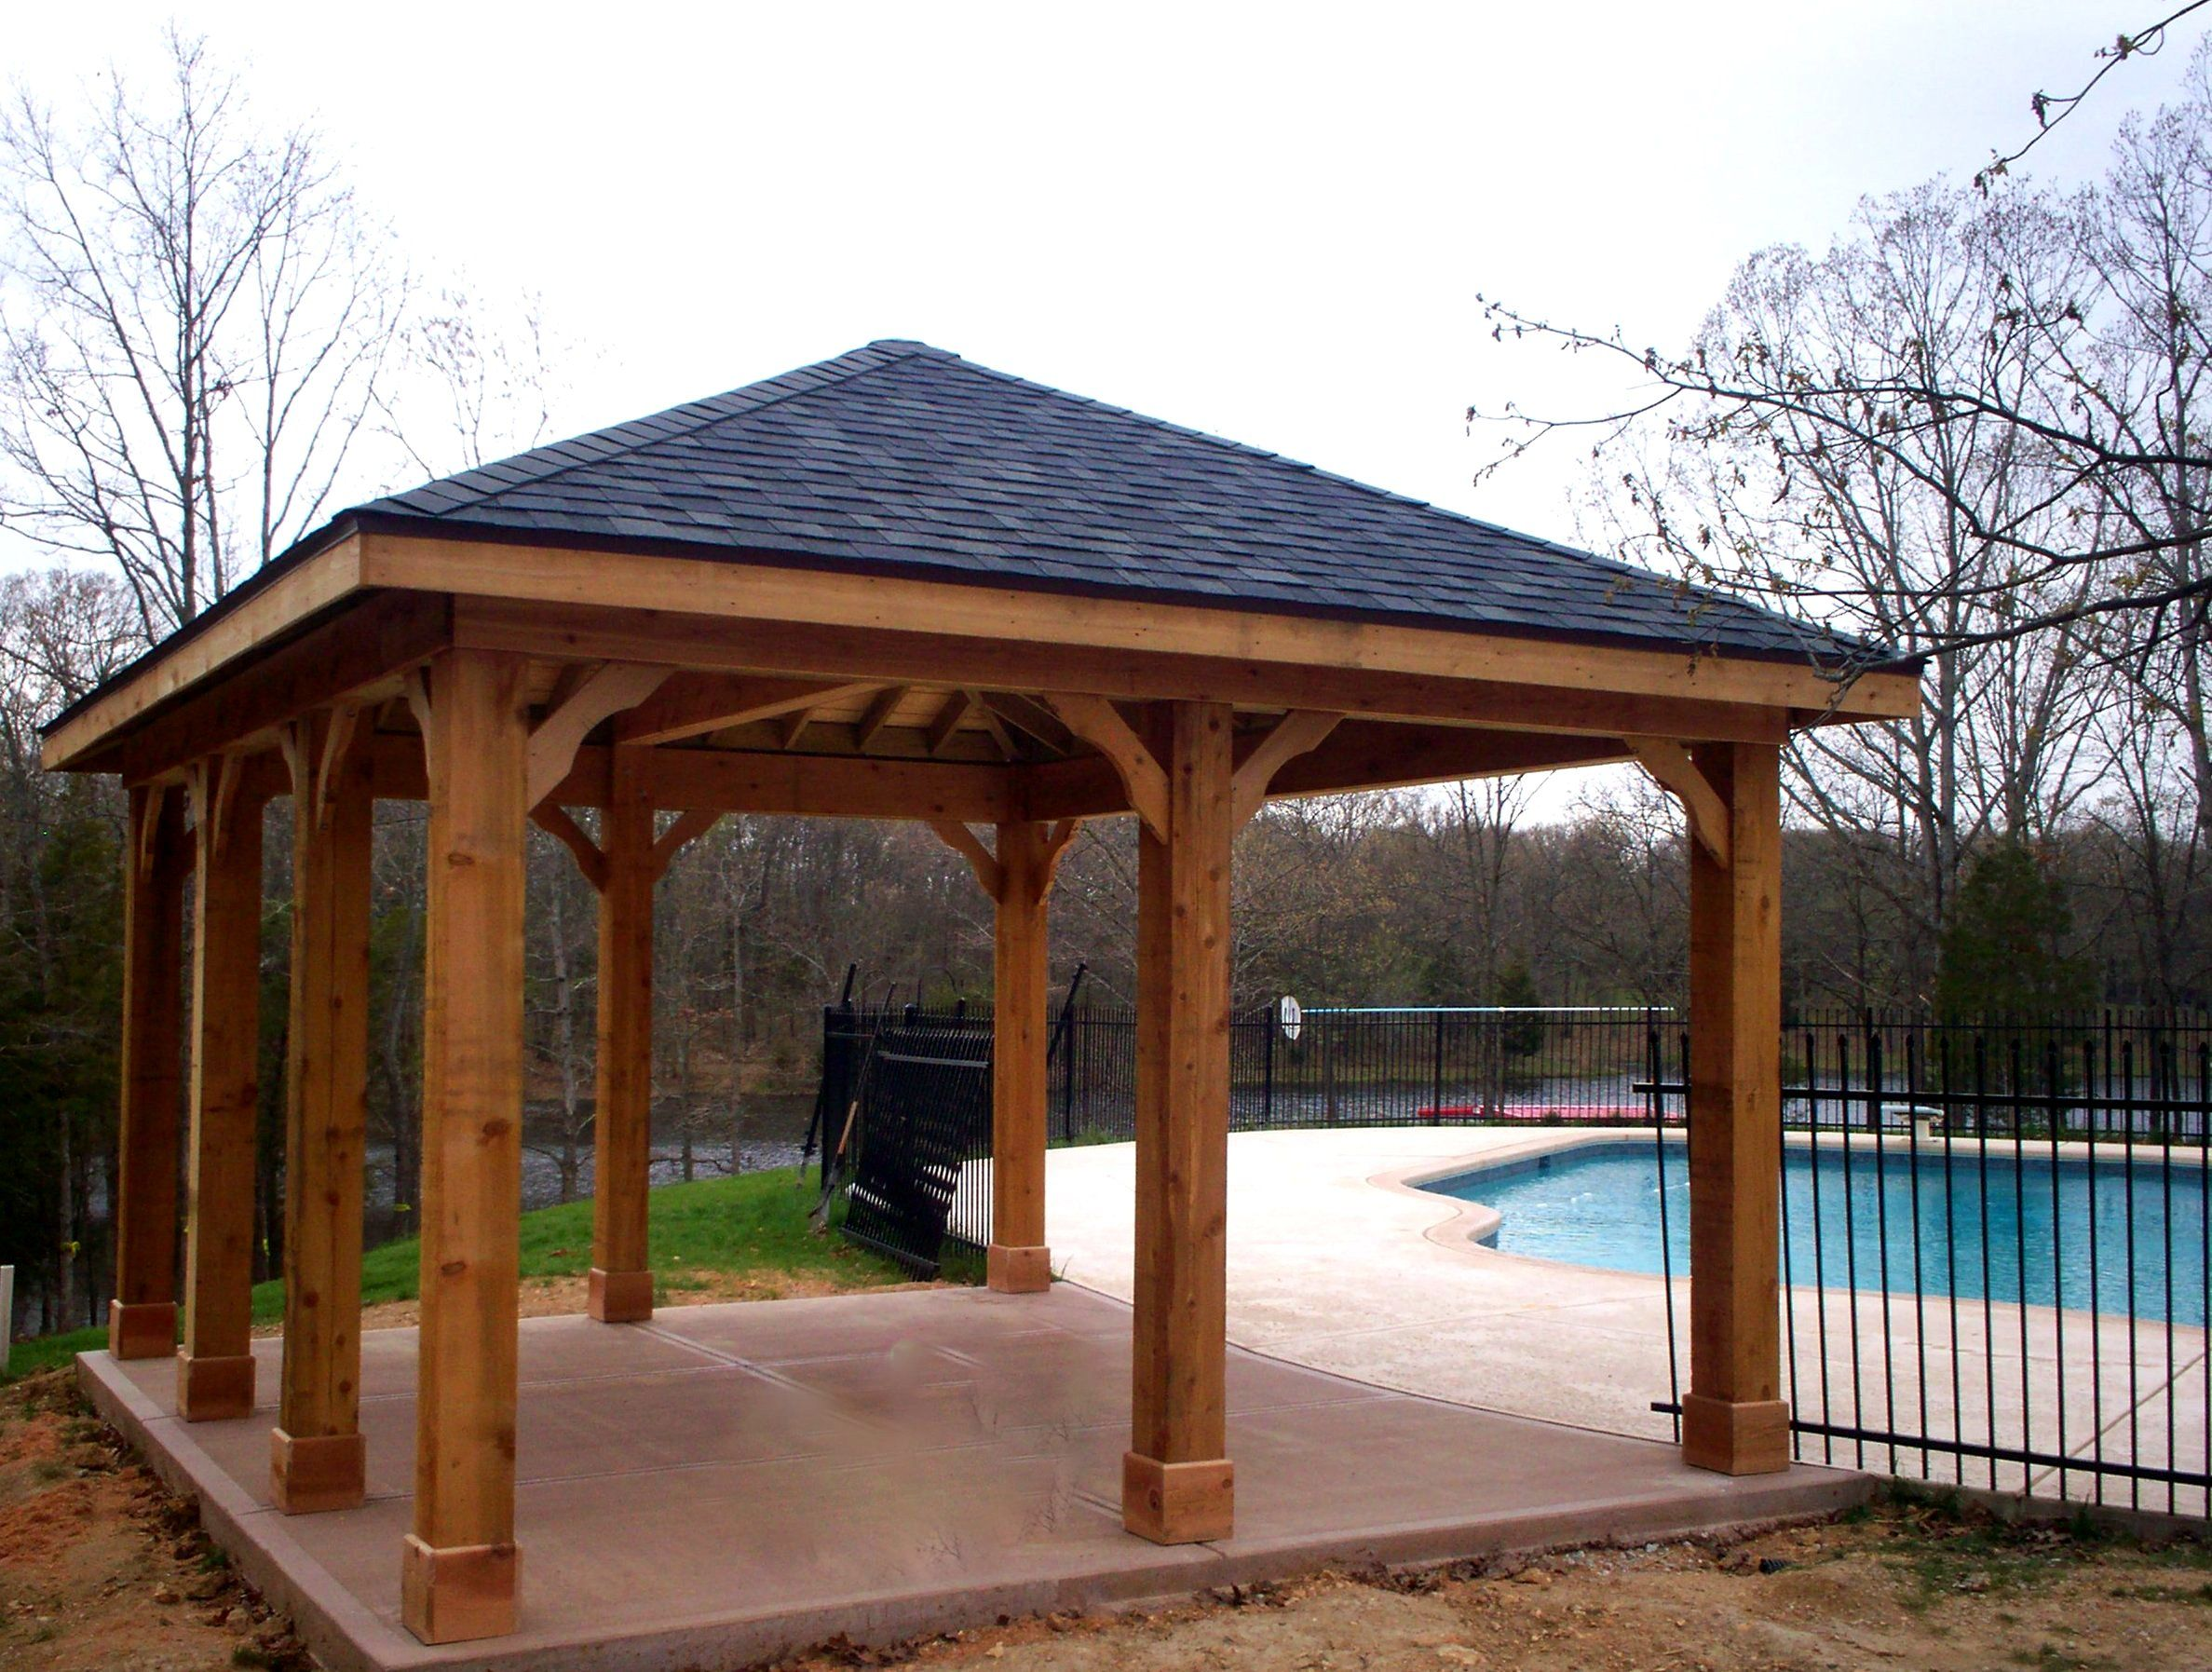 Patio Covers for Shade and Style | Outdoor Living ...